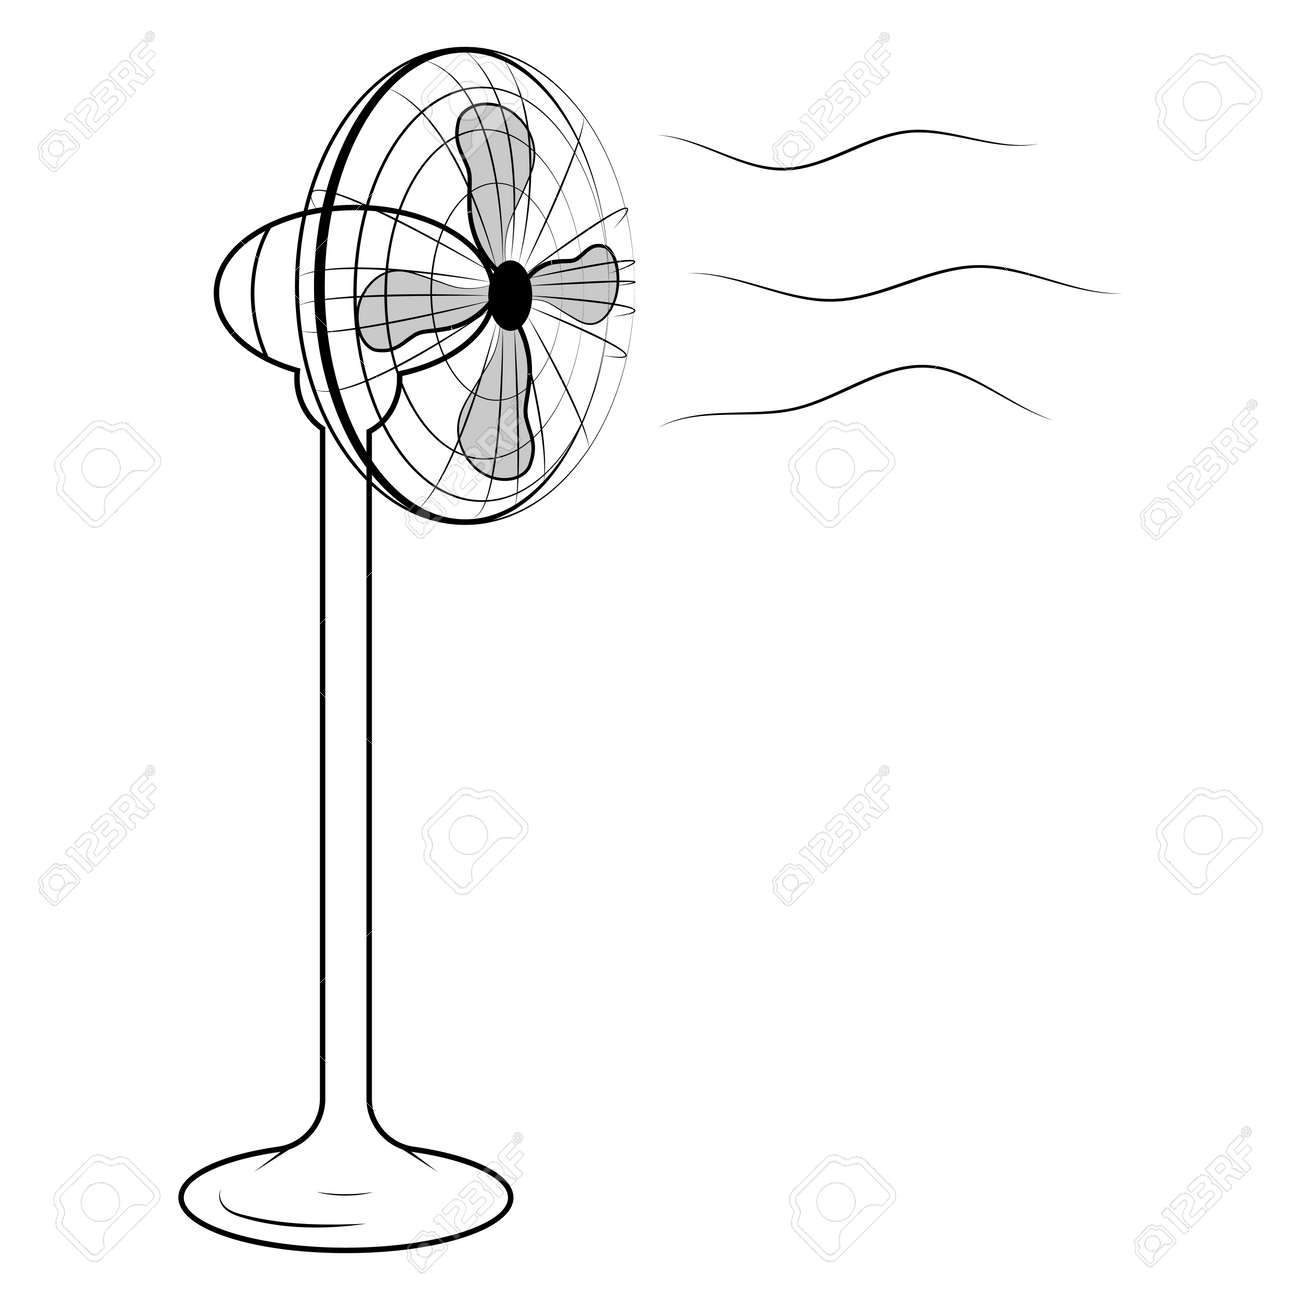 Vector Illustration Of Black Air Fan On White Background Royalty ... for Fan Clipart Black And White  303mzq